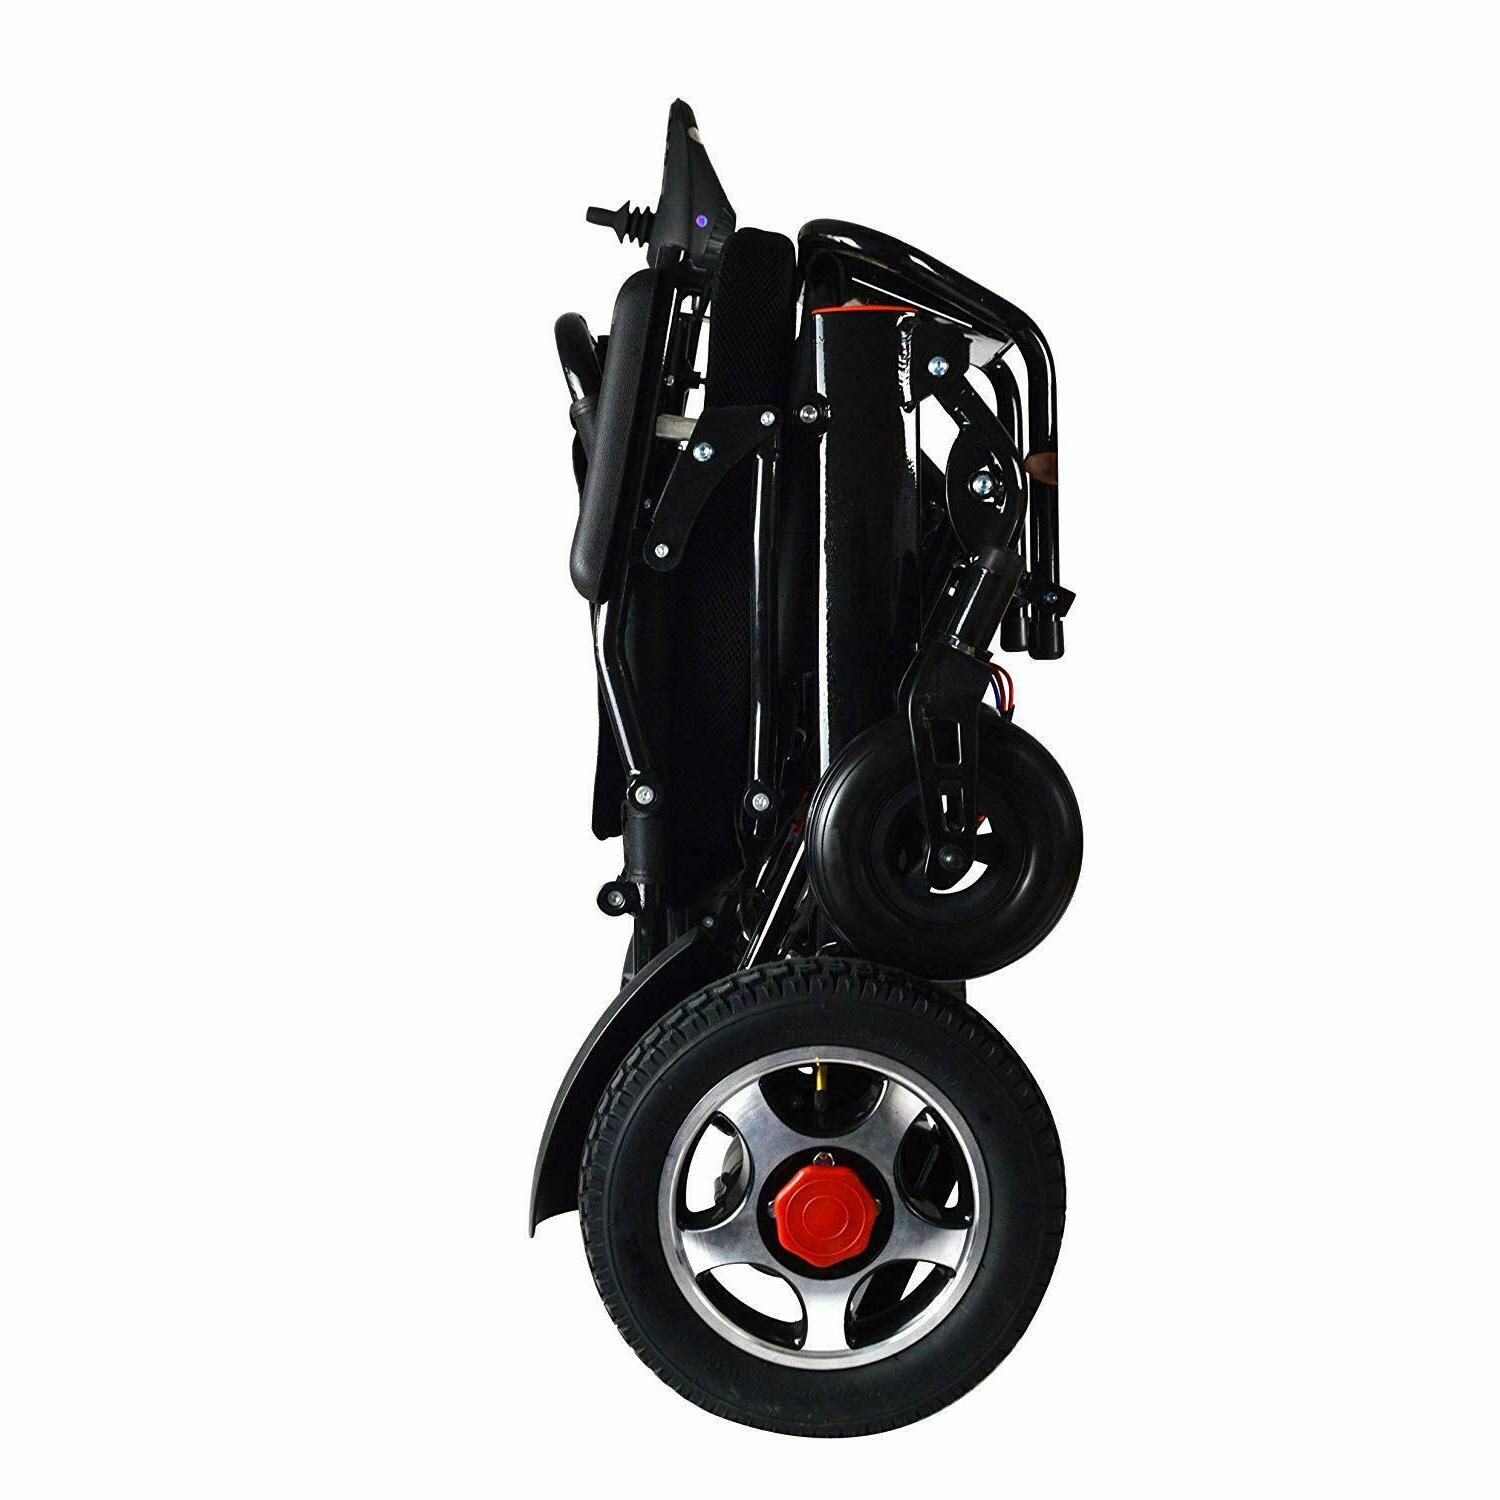 Electric Power Wheelchair Lightweight Medical Mobility Aid Motorized